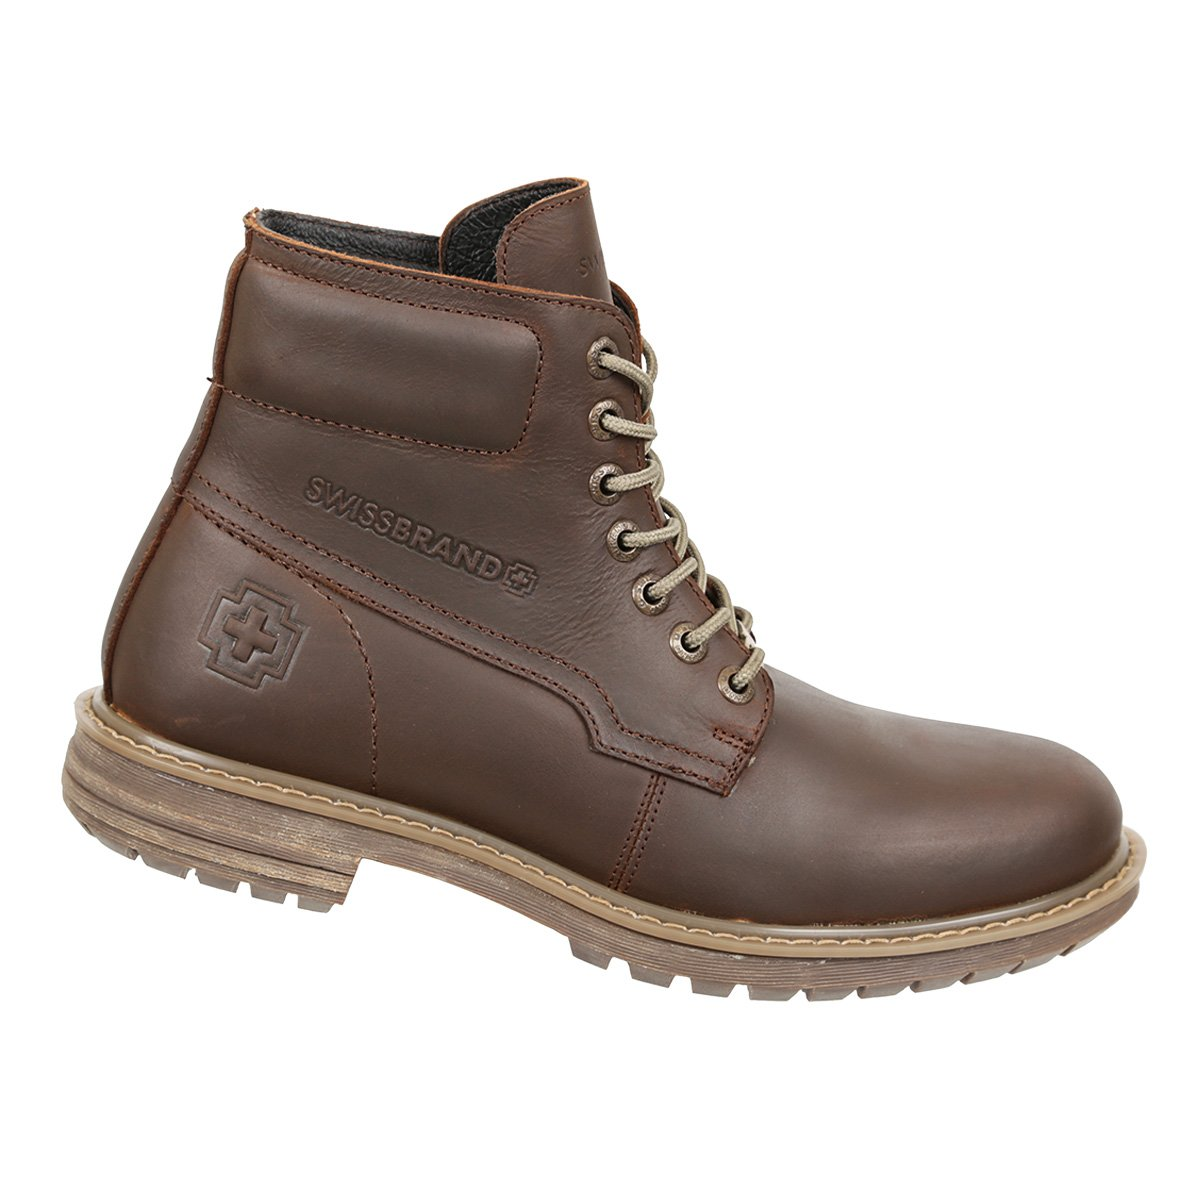 Swissbrand Mens Casual High-Top Lace-Up Boot Coffee 12.5